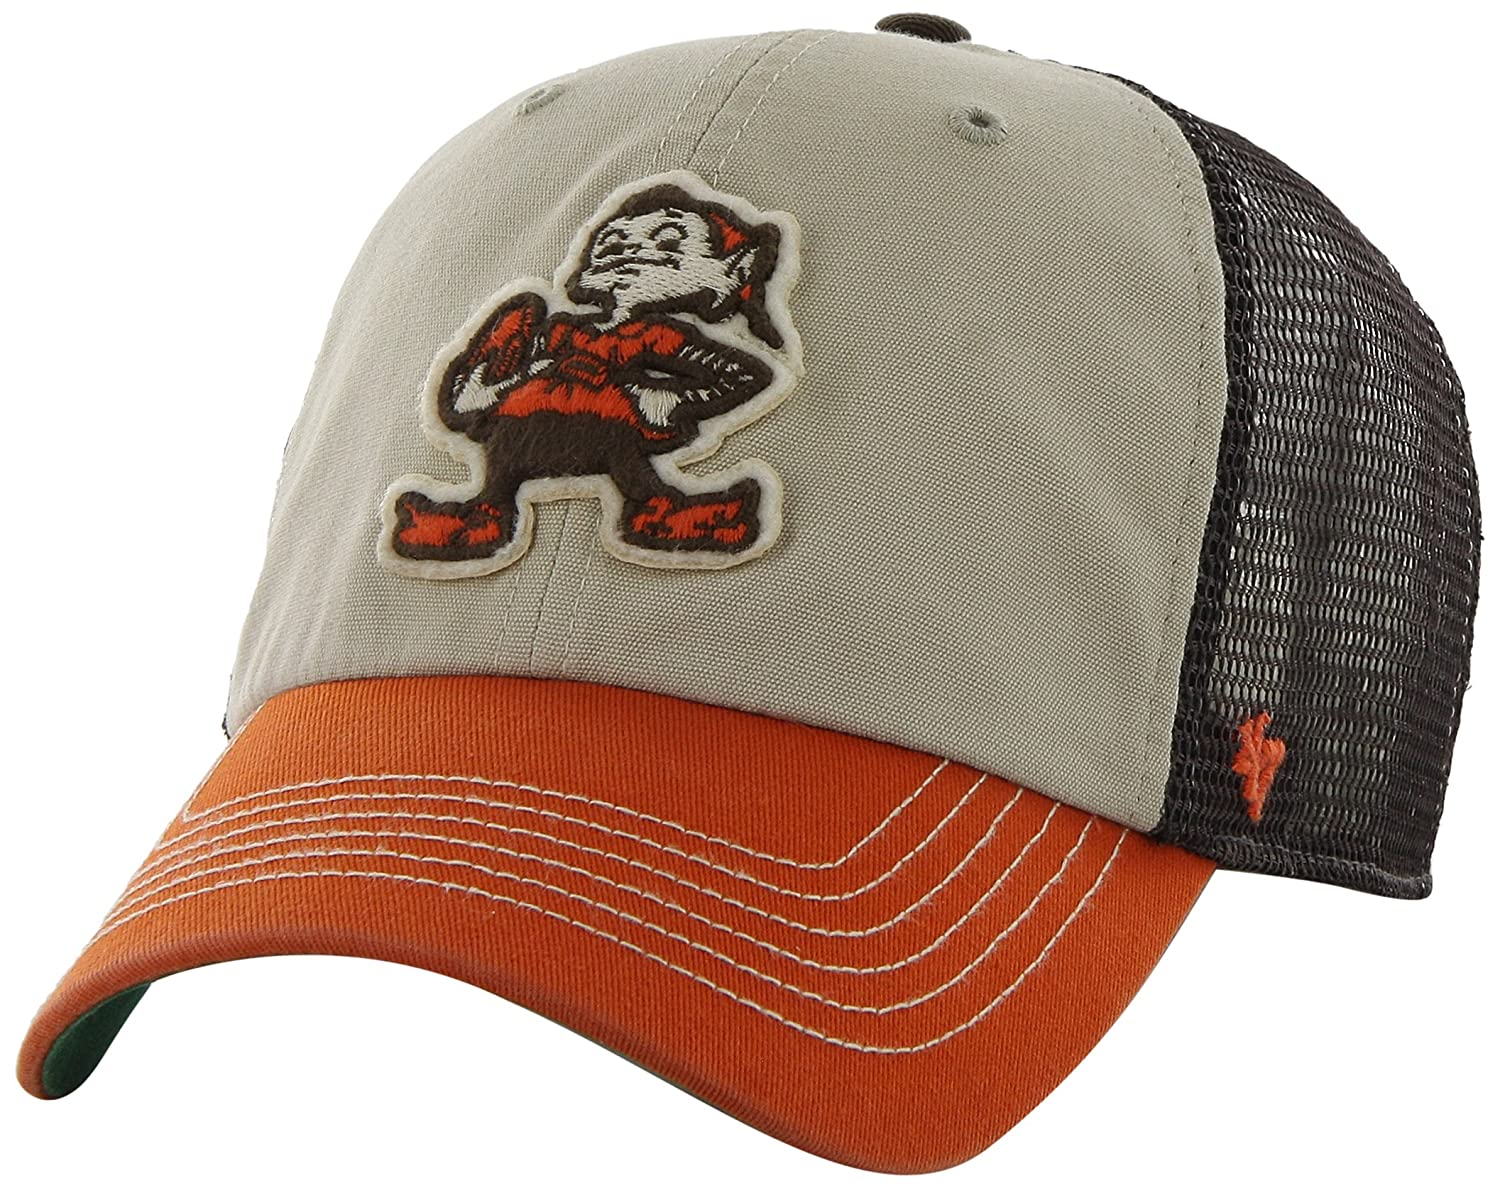 9a12caebf98e2 NFL Cleveland Browns '47 Brand McNally Clean Up Adjustable Hat ...